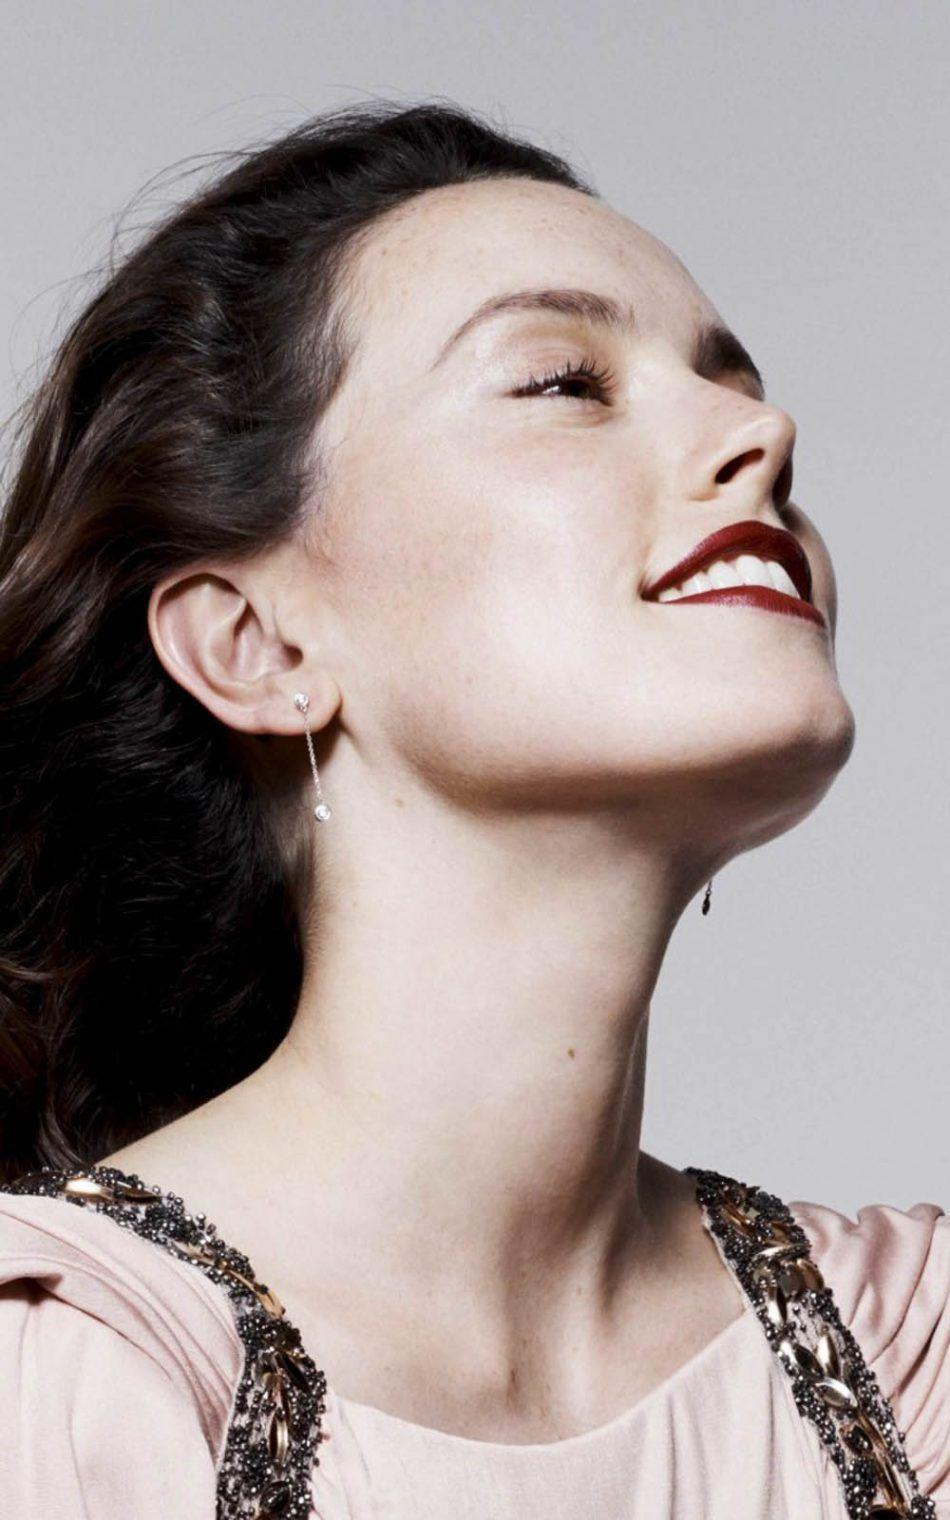 Daisy Ridley For Elle UK 2017 - Download Free 100% Pure HD Quality ...